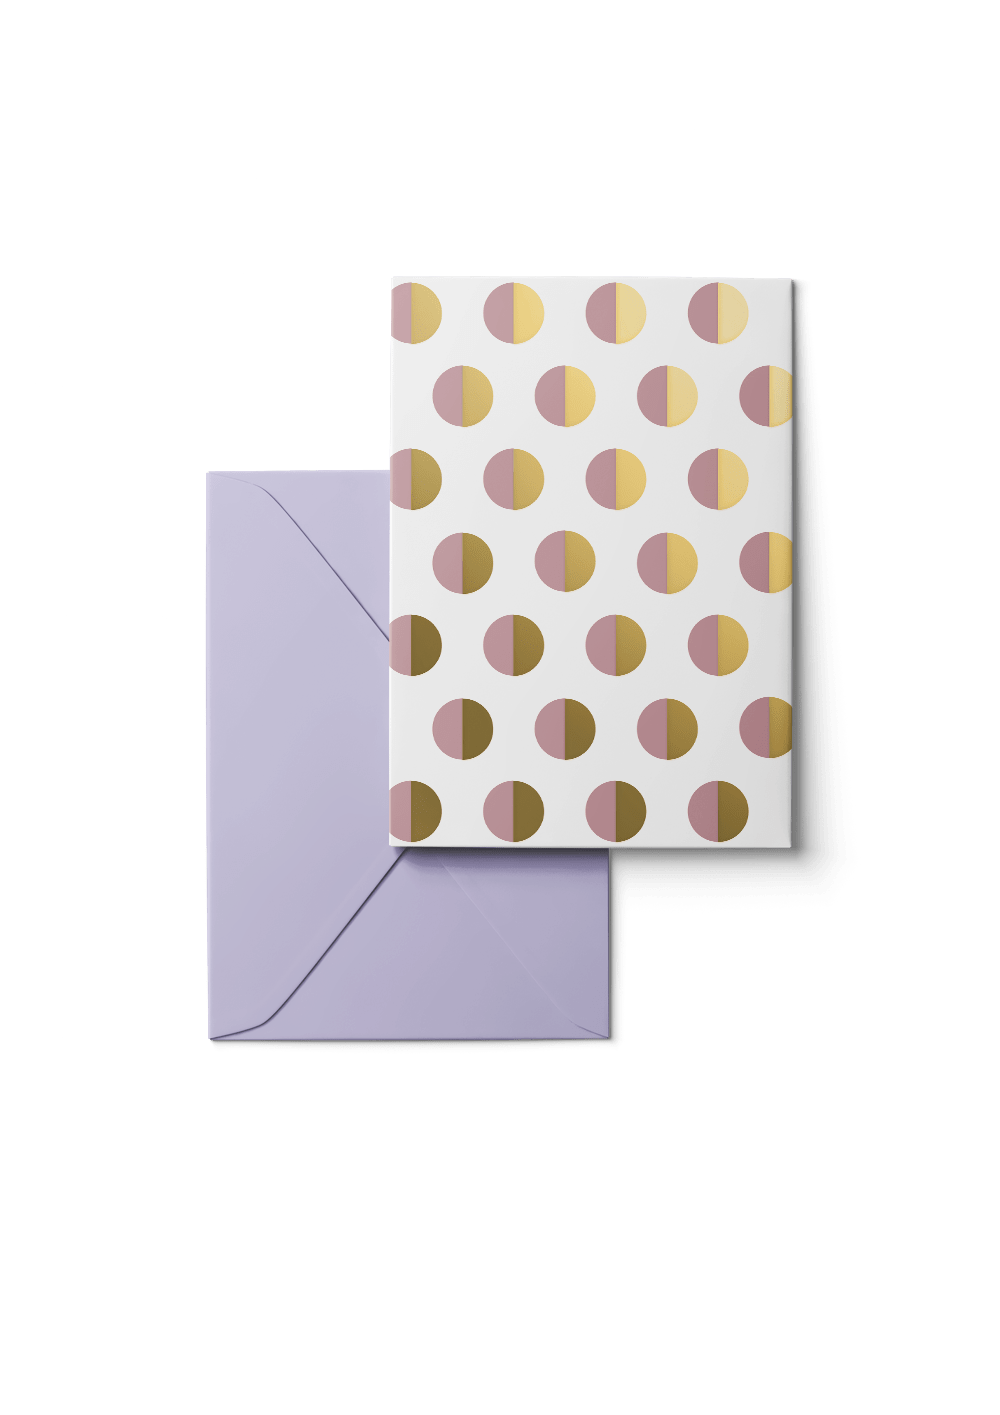 Crescent Moon, Gold, 6 Karten Set by Karten Design Fabrik. Supplier of designer Greeting Cards, Gift Wrap, Christmas Cards & Invitations to leading design stores including Connox, Modulor, Magazin & Manufactum.